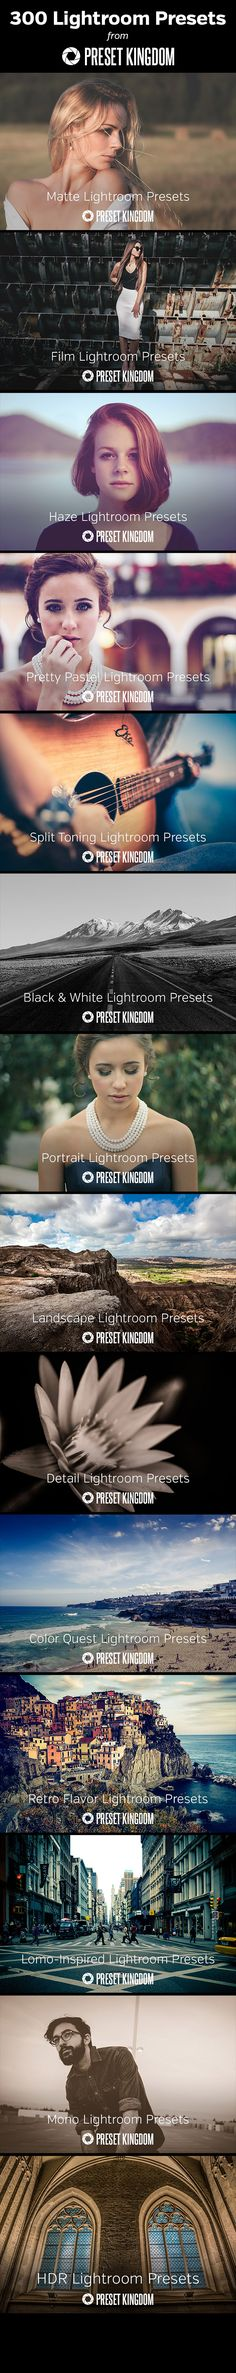 Bundle of 300 Lightroom presets from PresetKingdom.com #lightroom